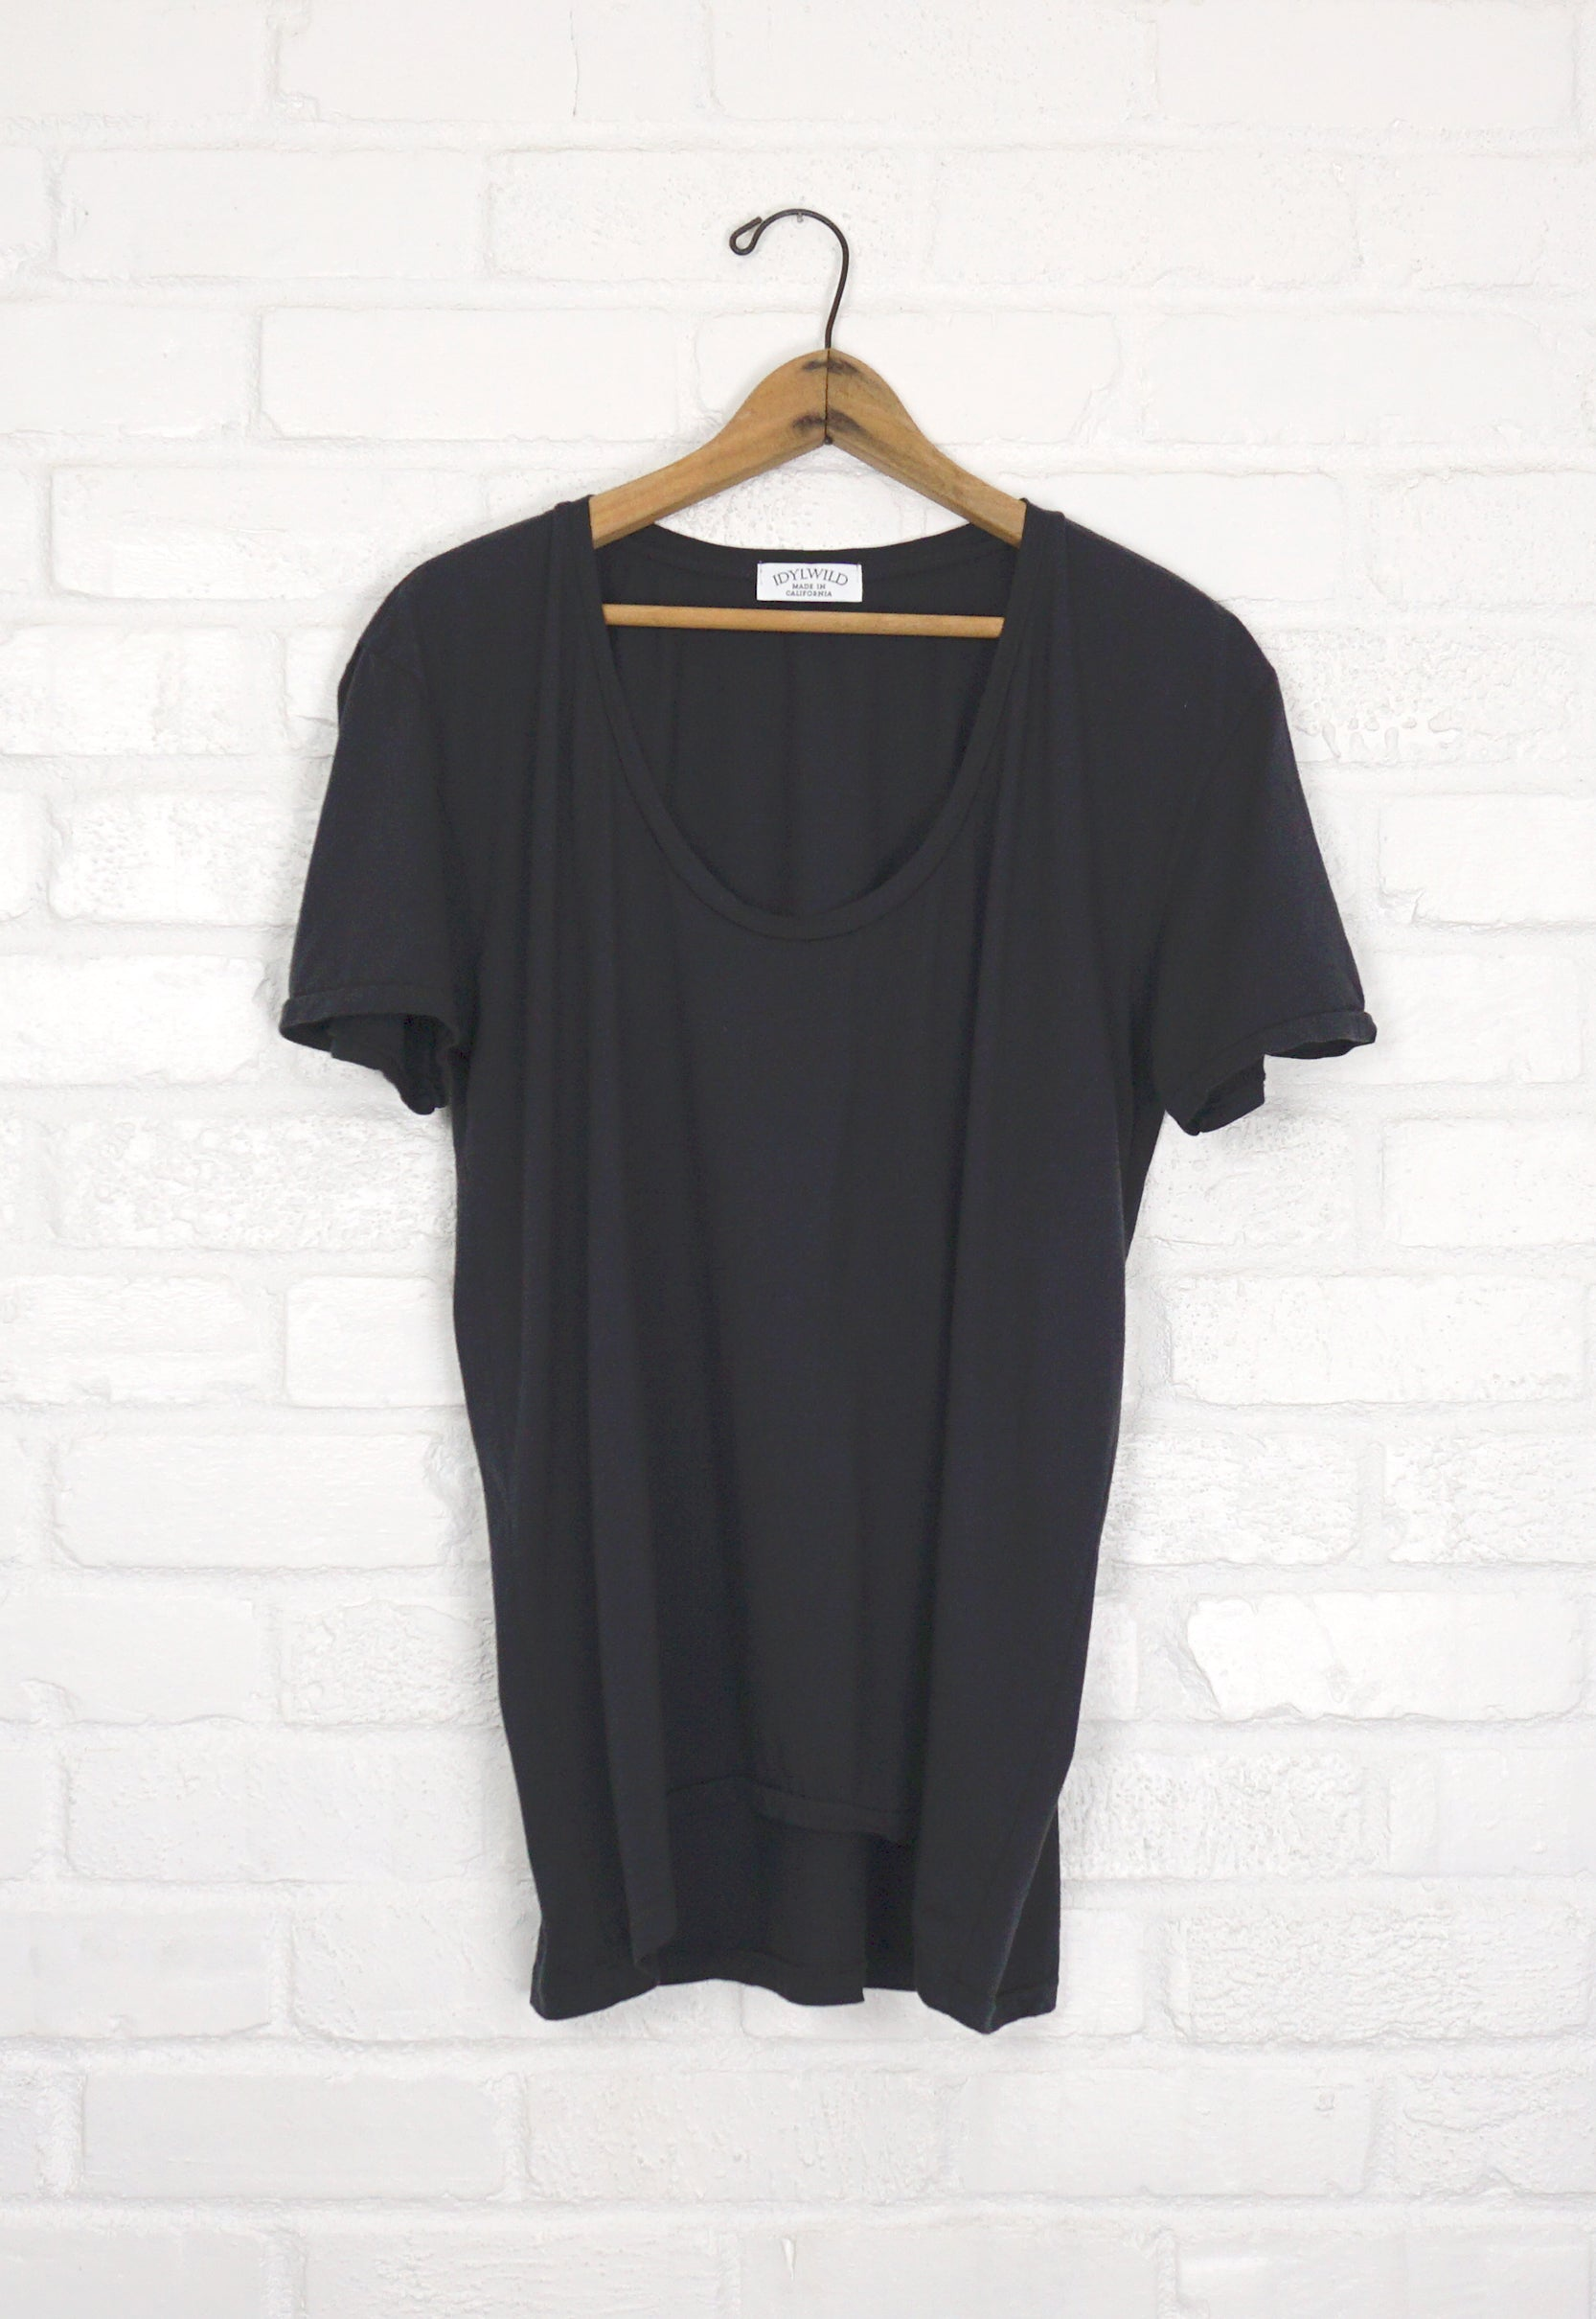 Idylwild Boyfriend Tee - Washed Black